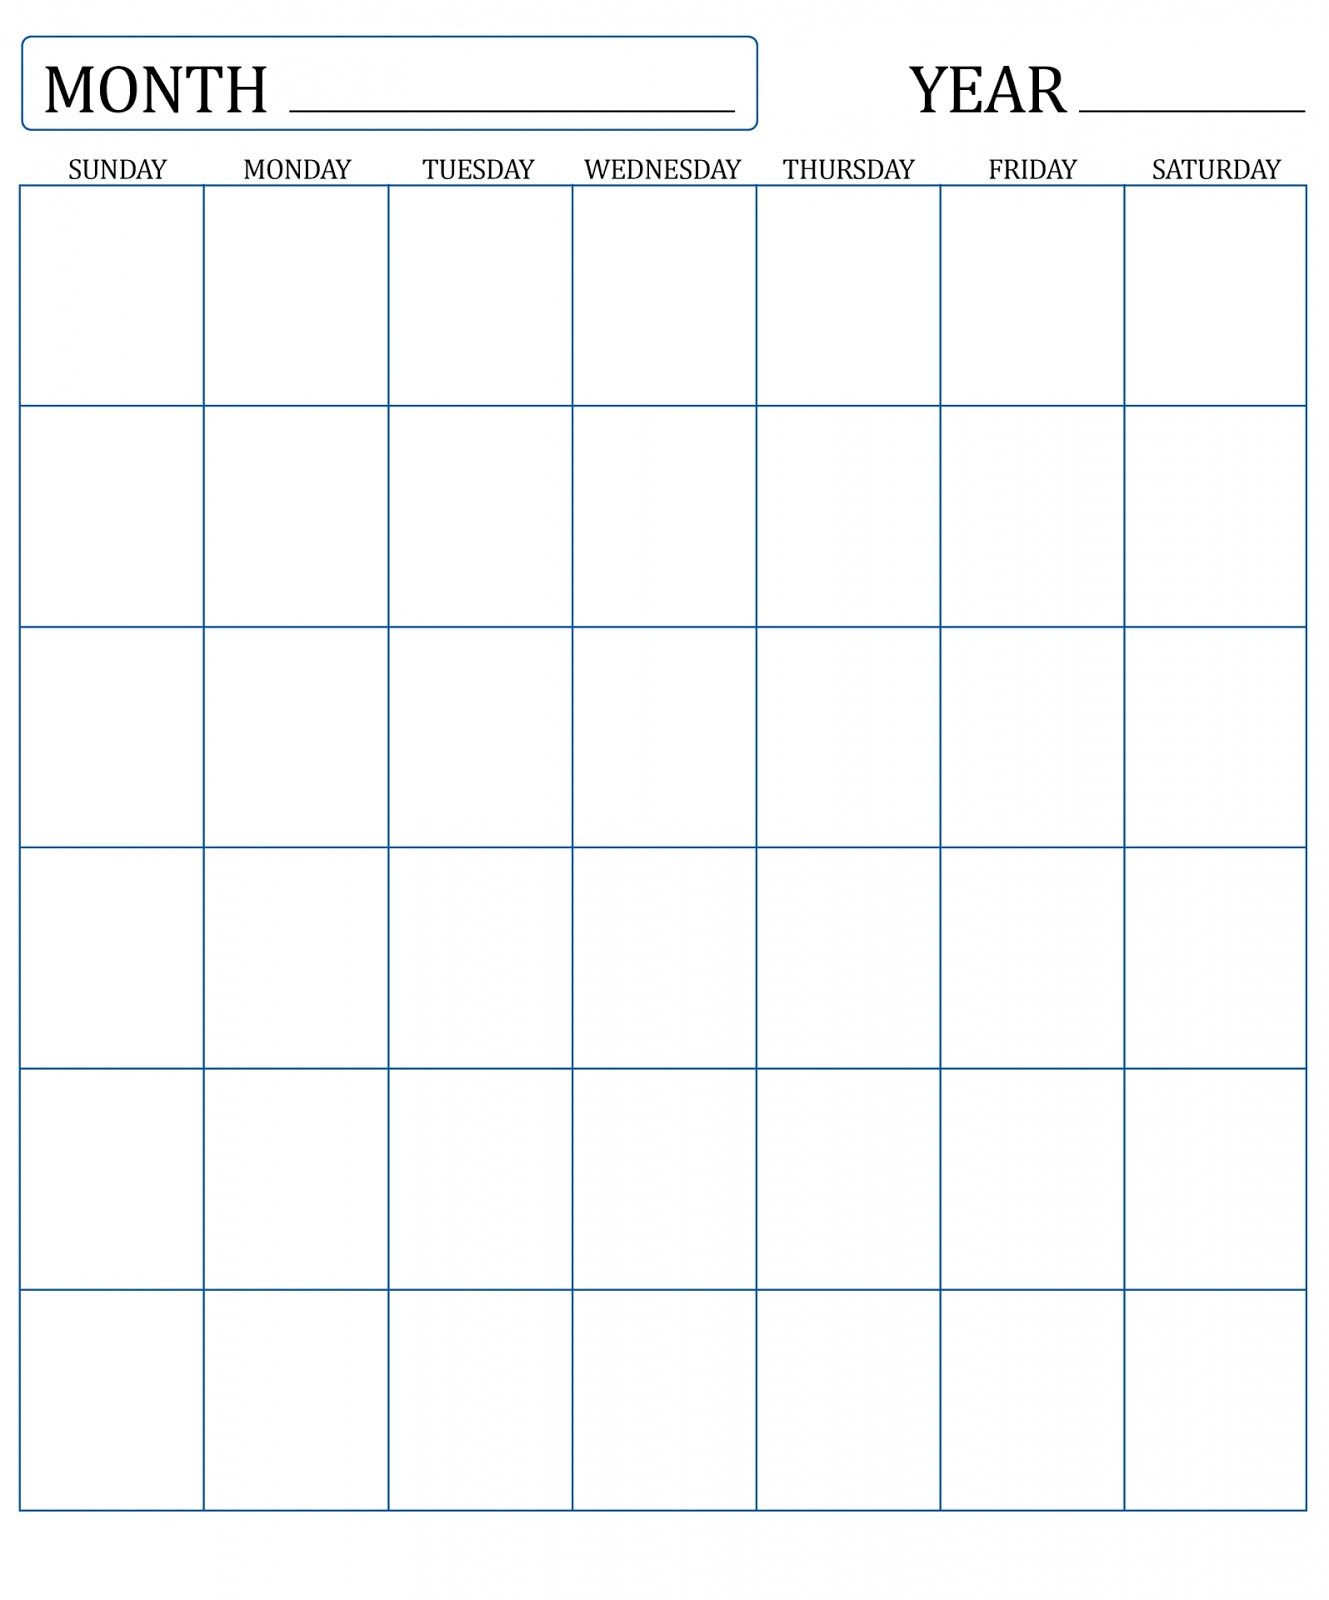 Blank Calendar Monthly : Blank monthly calendar for empty calendars